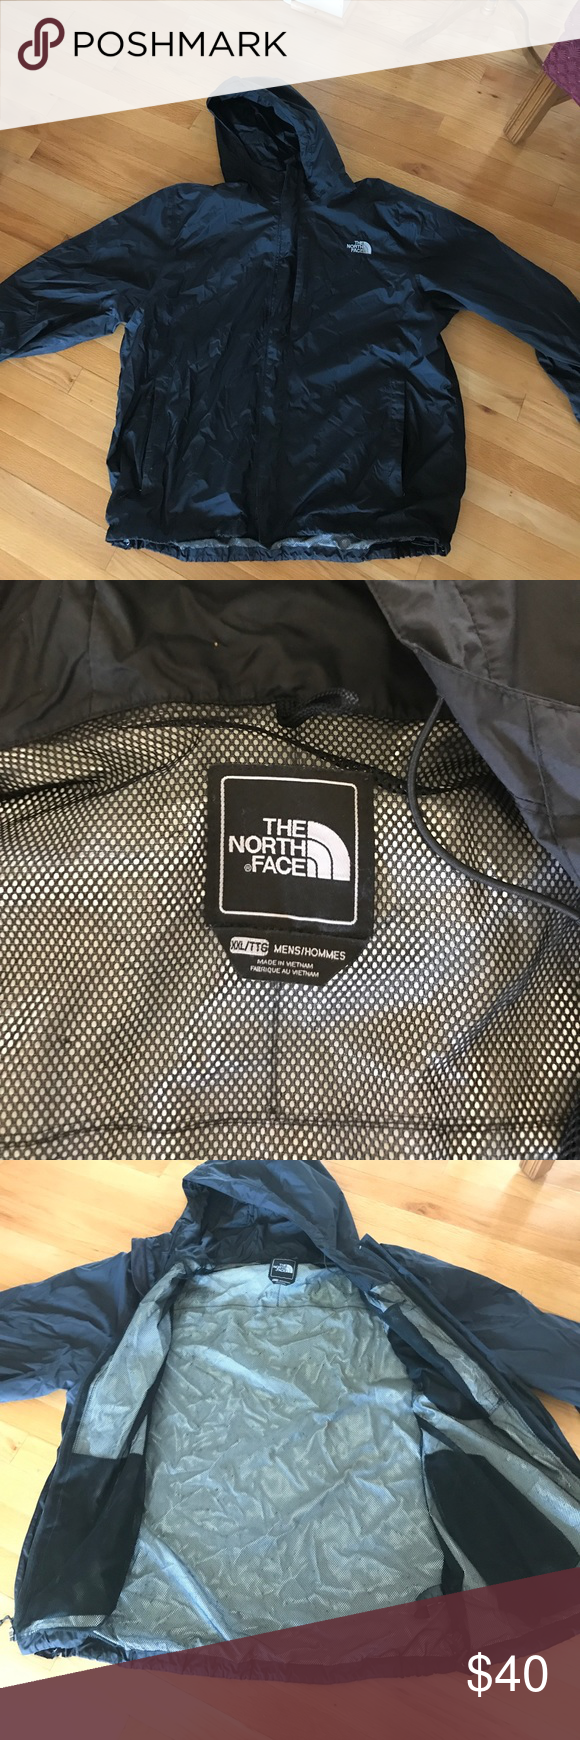 Men's North Face Rainjacket Great condition, no rips or